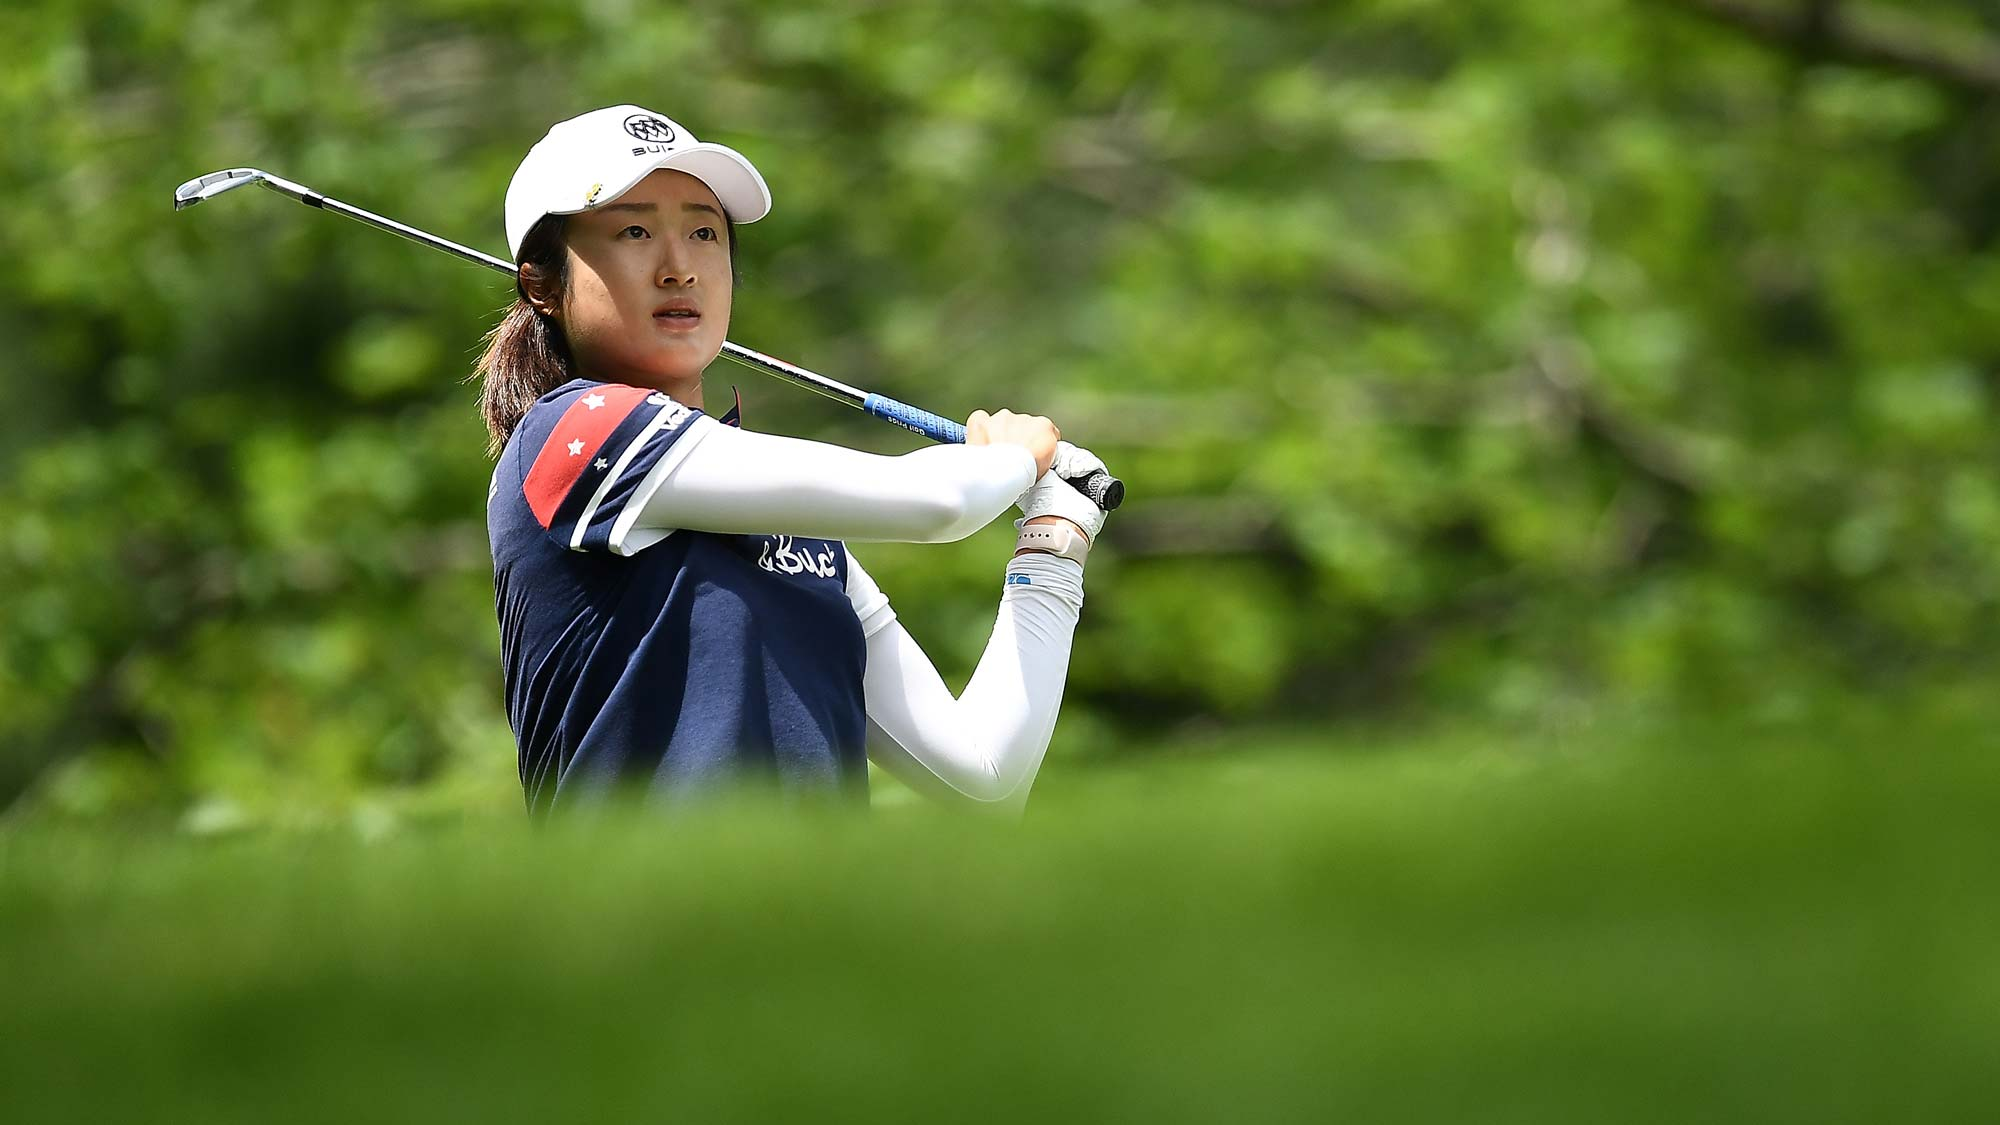 Yu Liu of China hits her tee shot on the second hole during the second round of the Thornberry Creek LPGA Classic